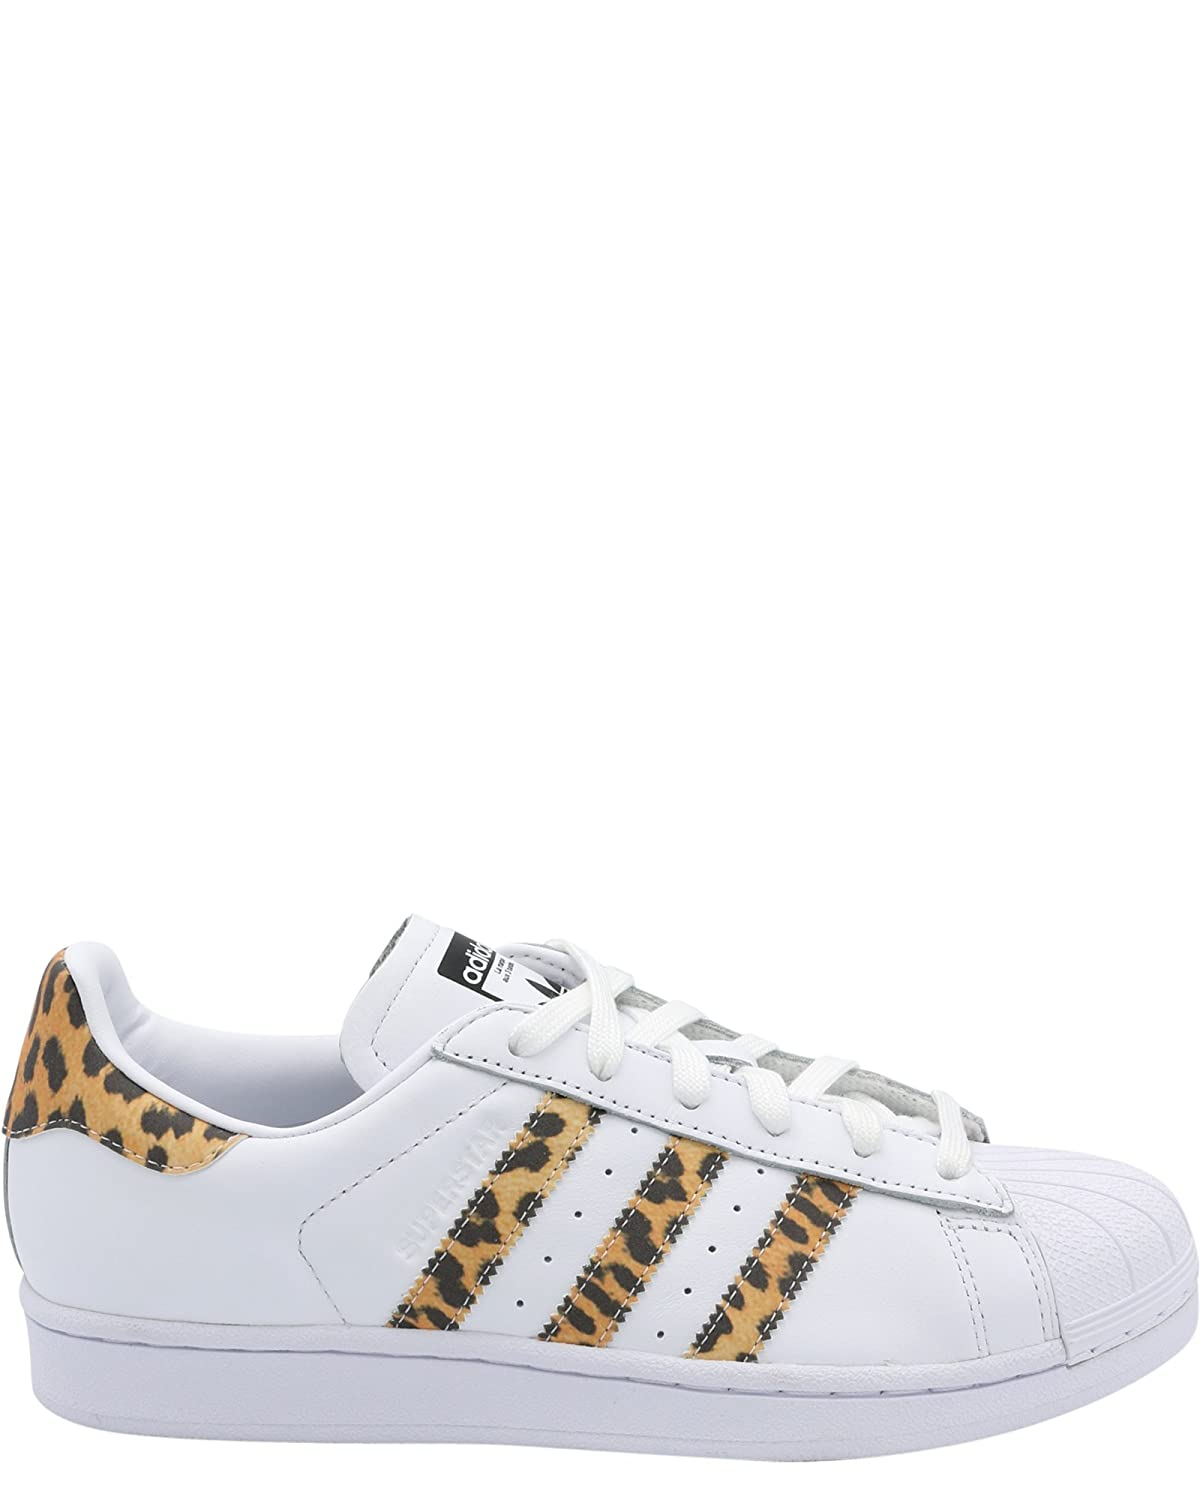 adidas Originals Women's Superstar W Sneaker